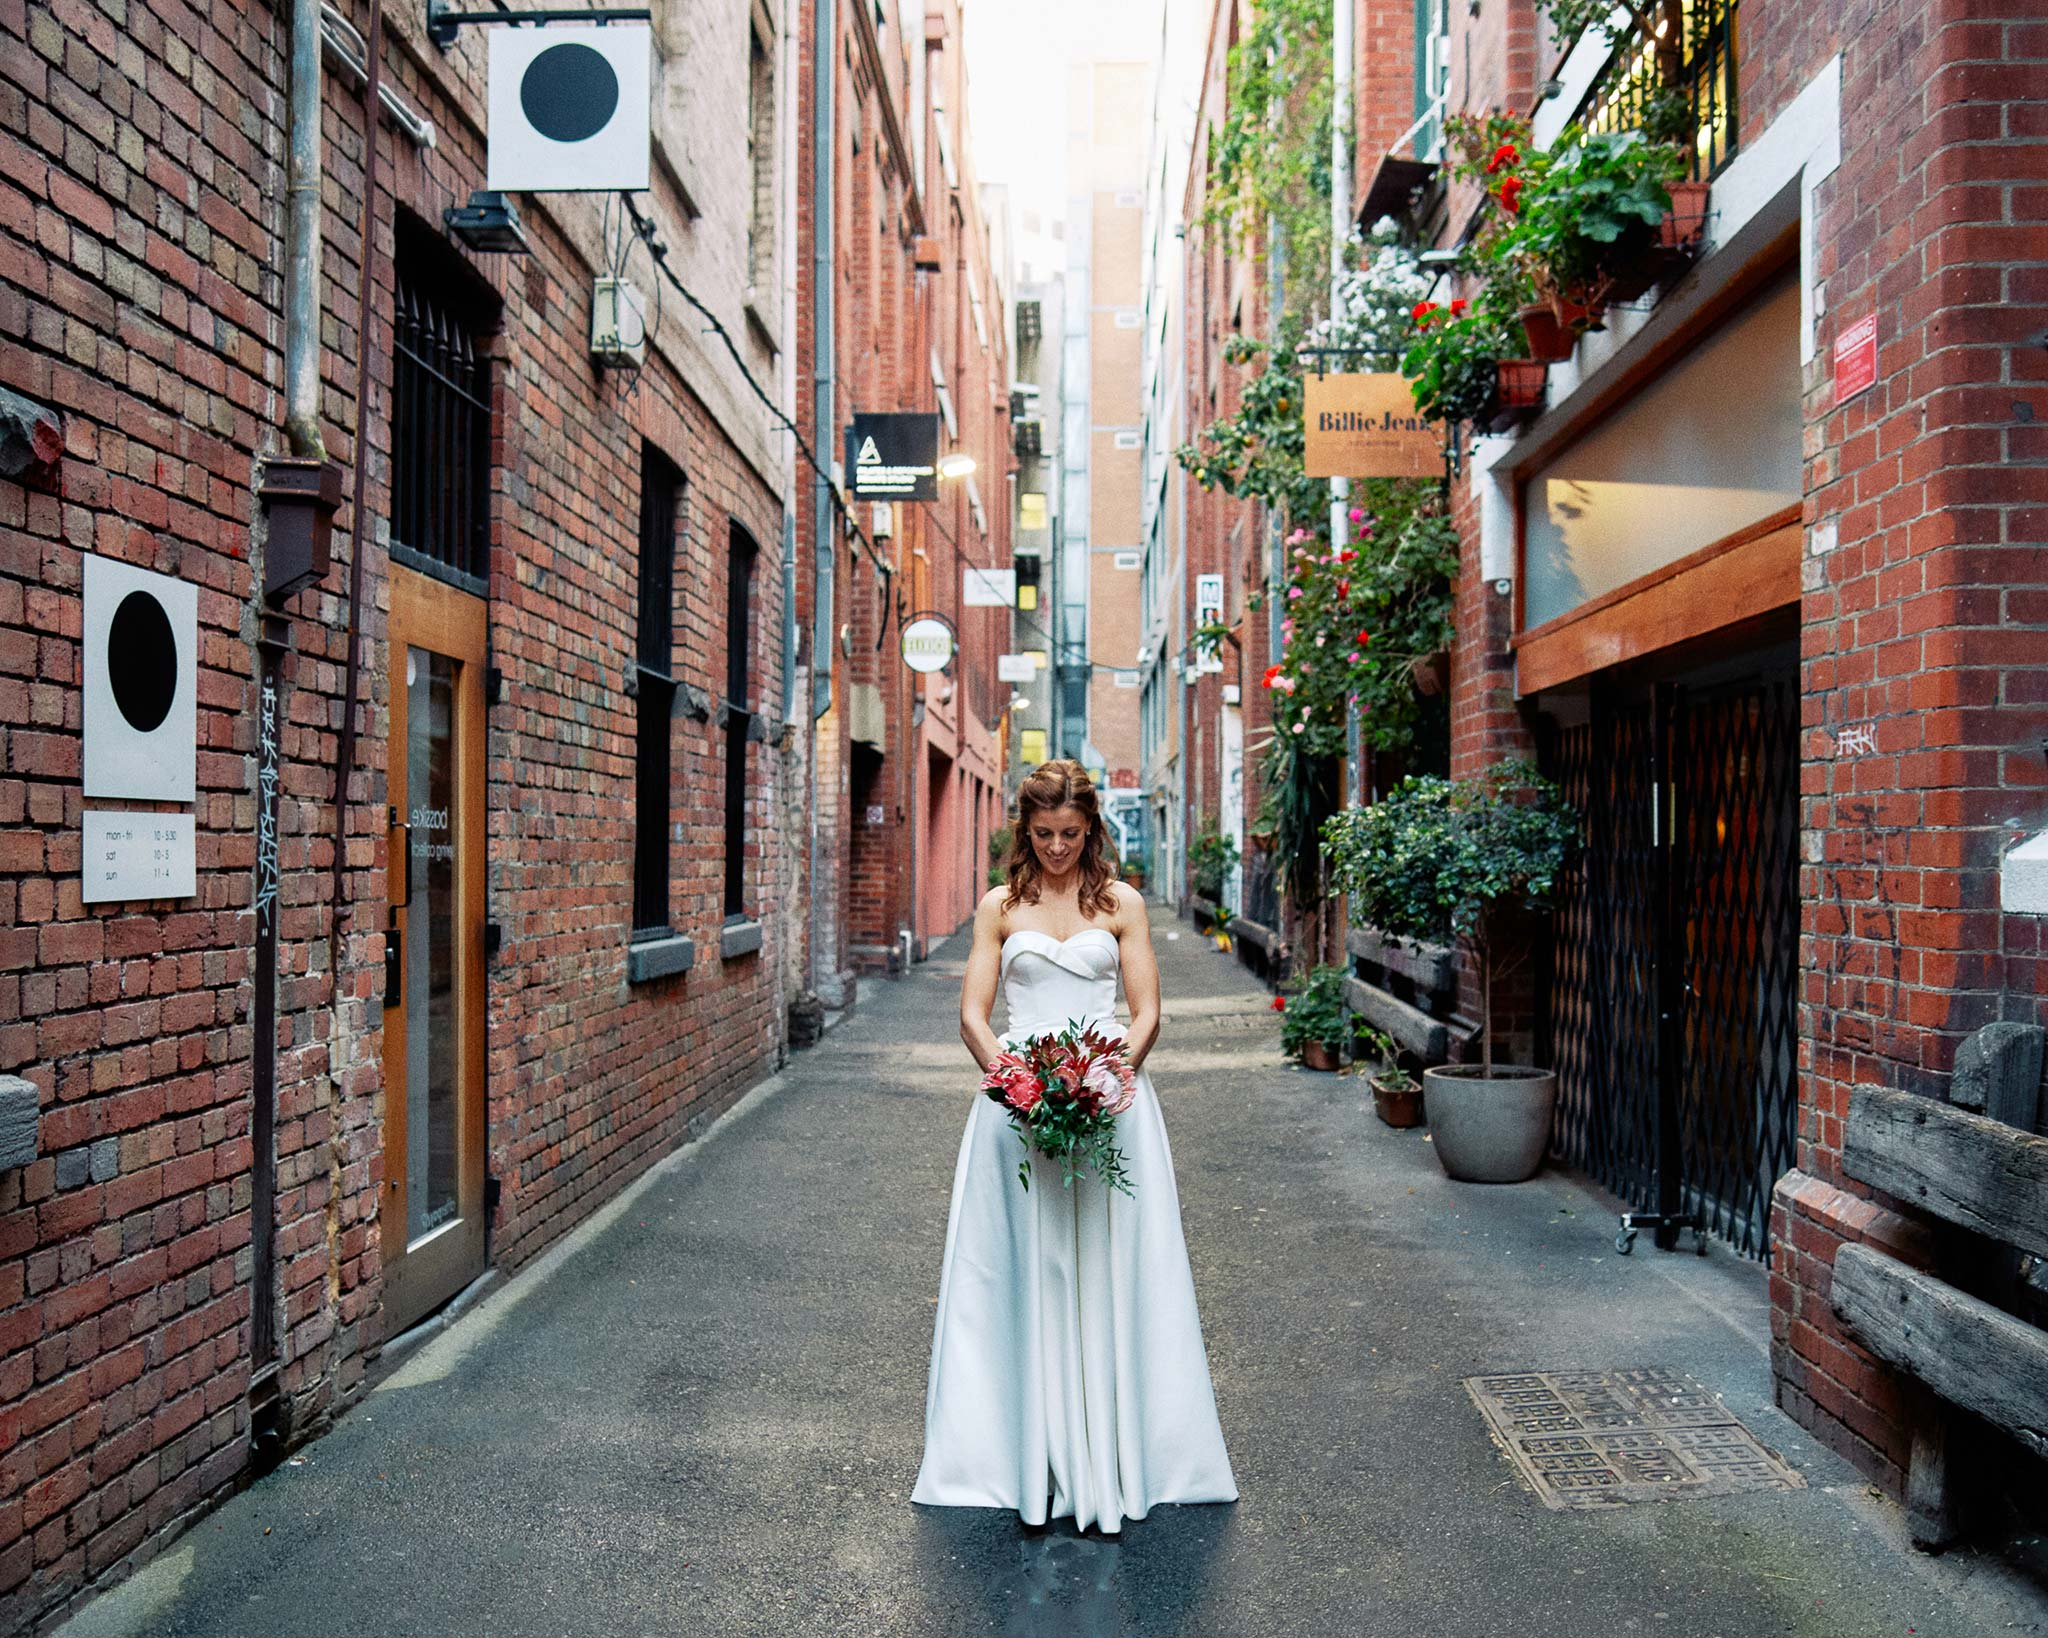 Melbourne Wedding Hardware Lane alley portrait bride holding bouquet in alleyway